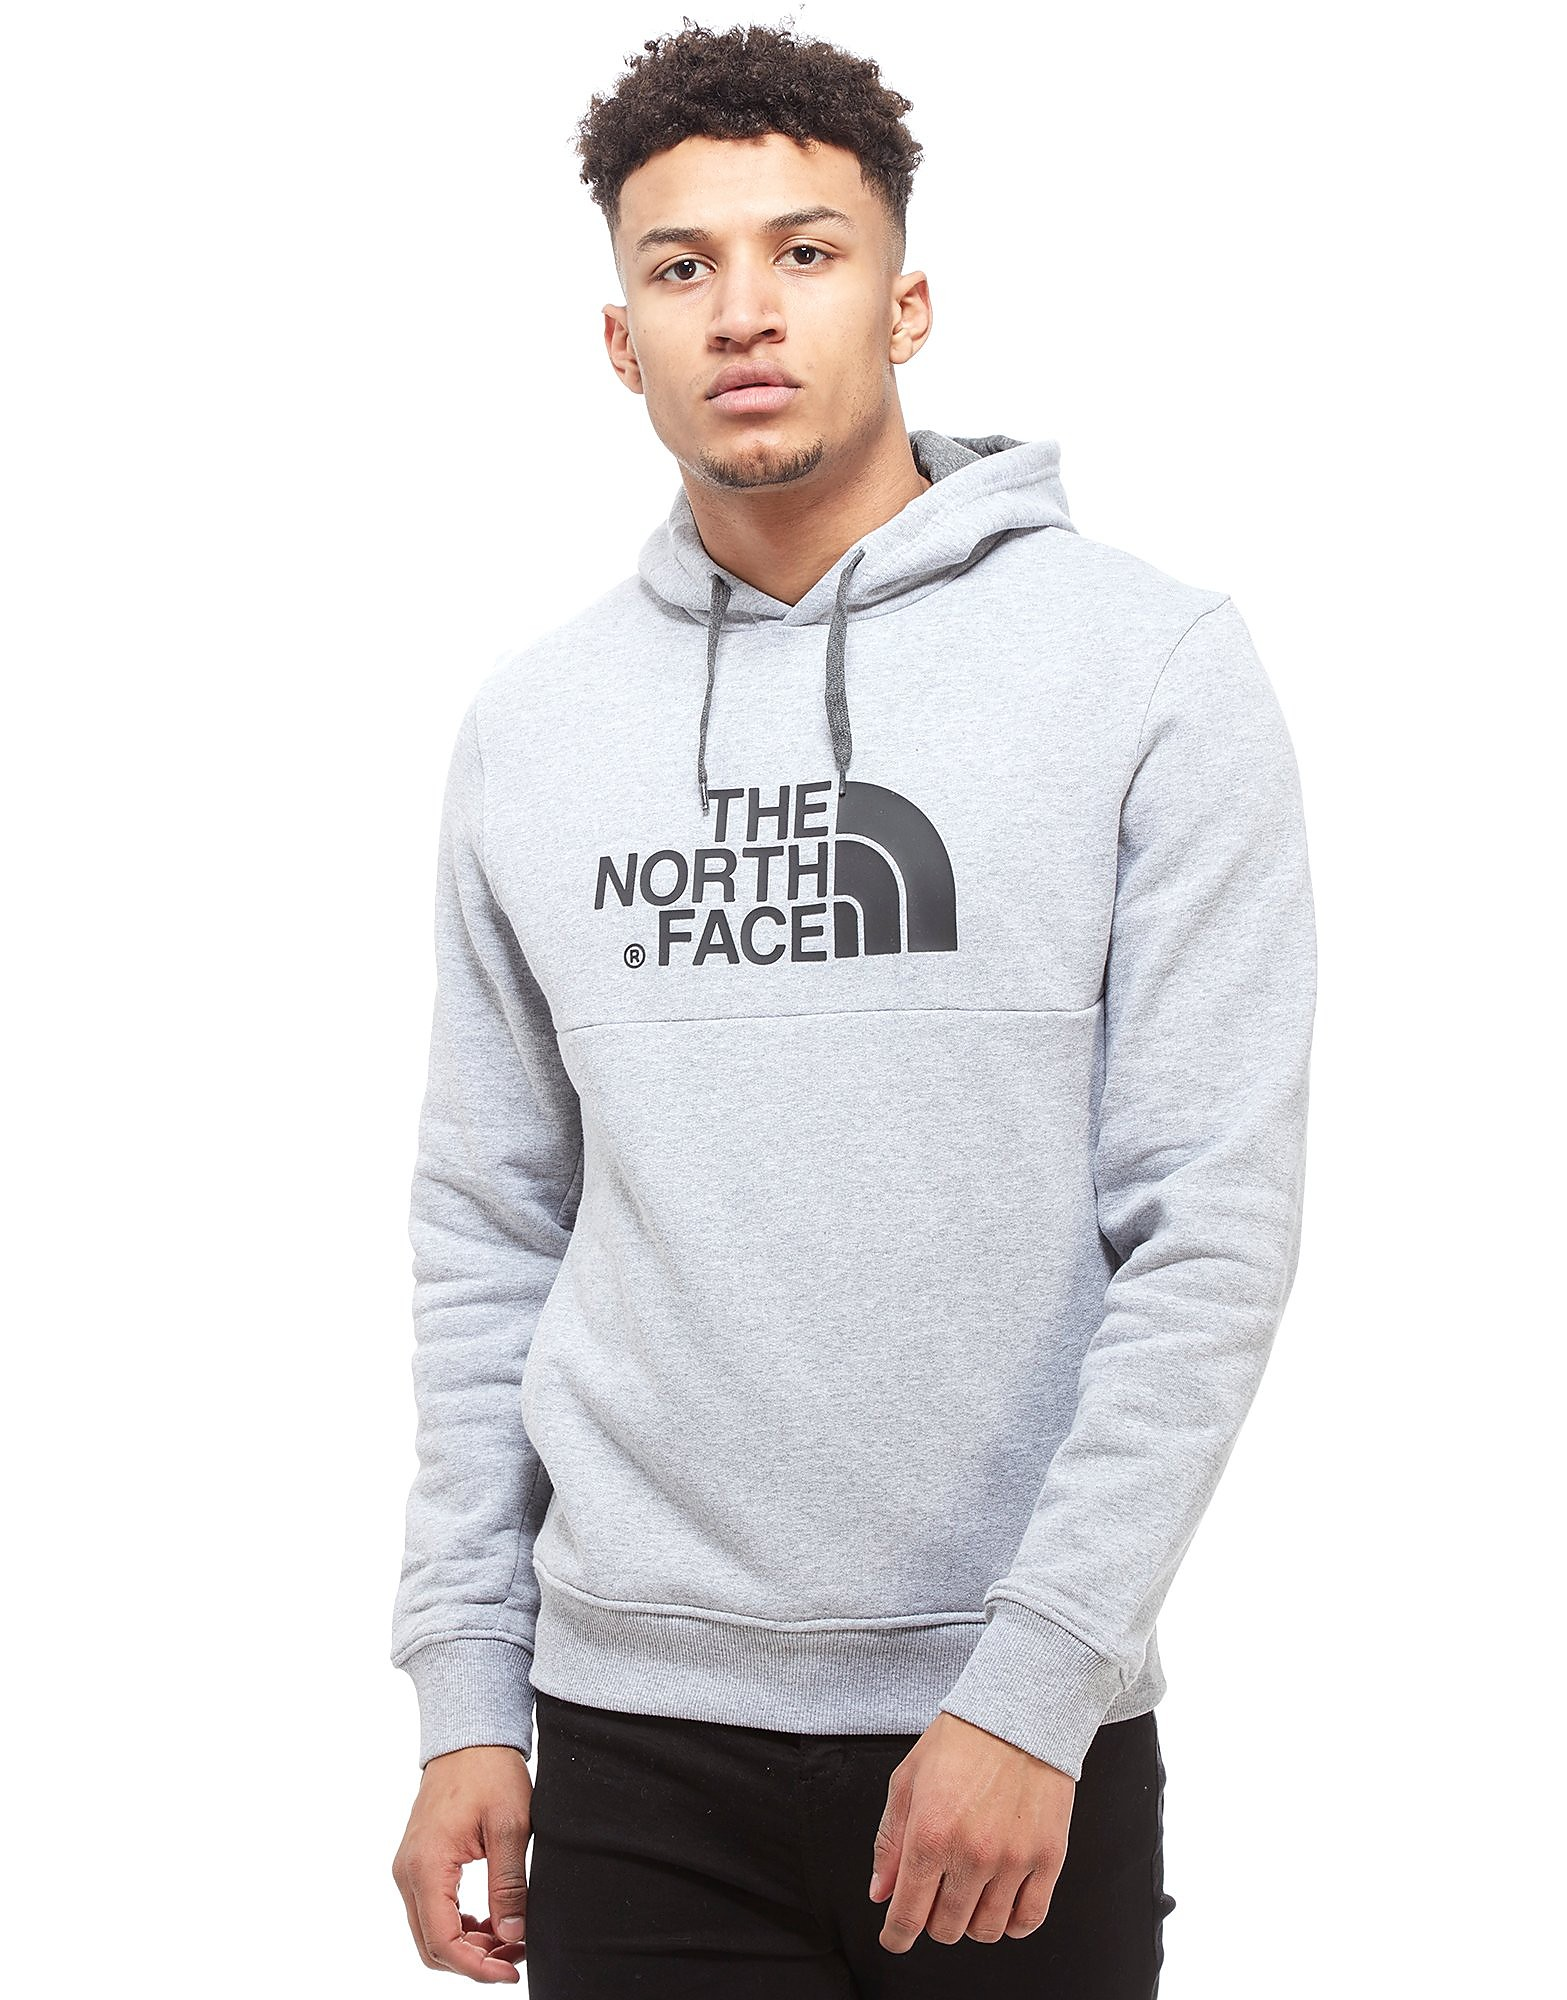 The North Face Bondy Overhead Hoody